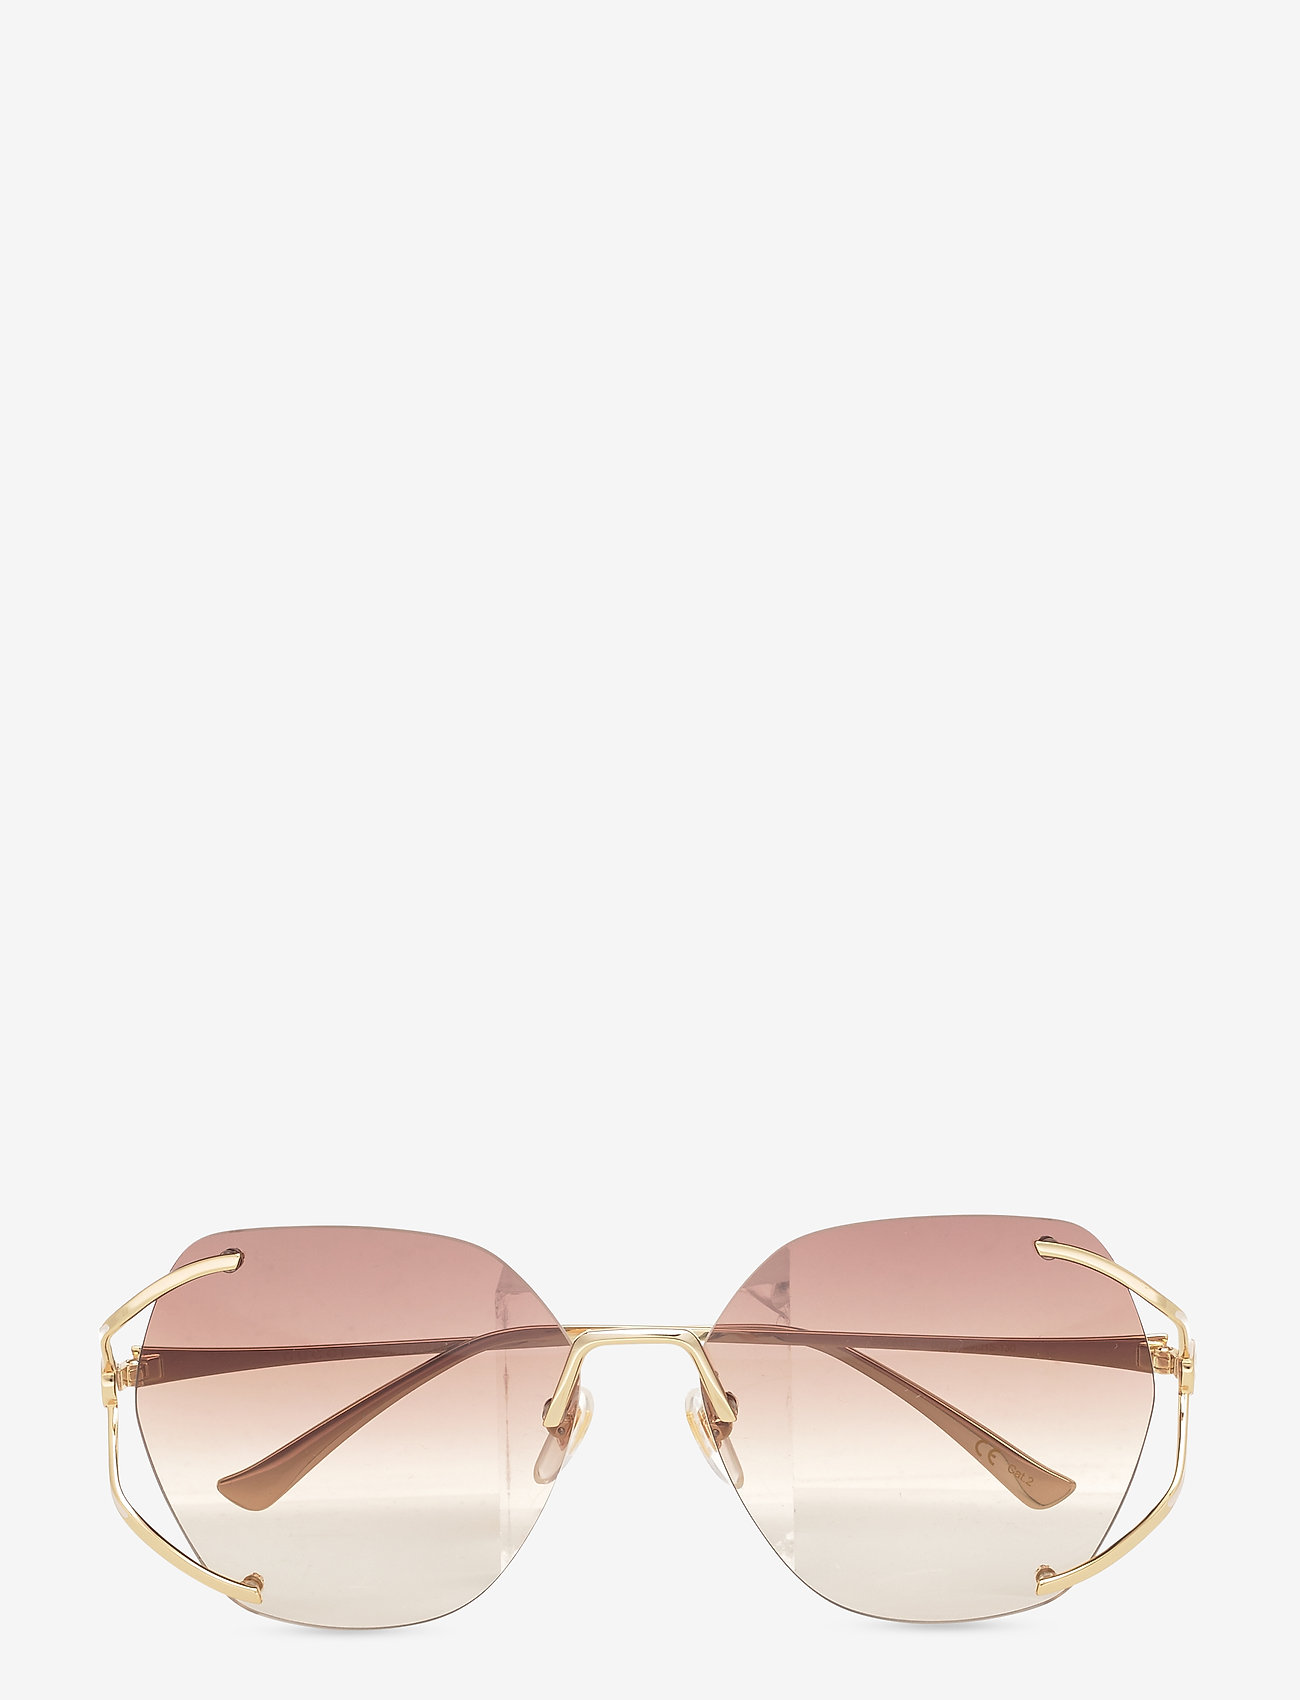 Gucci Sunglasses - GG0651S - rond model - gold-gold-brown - 0